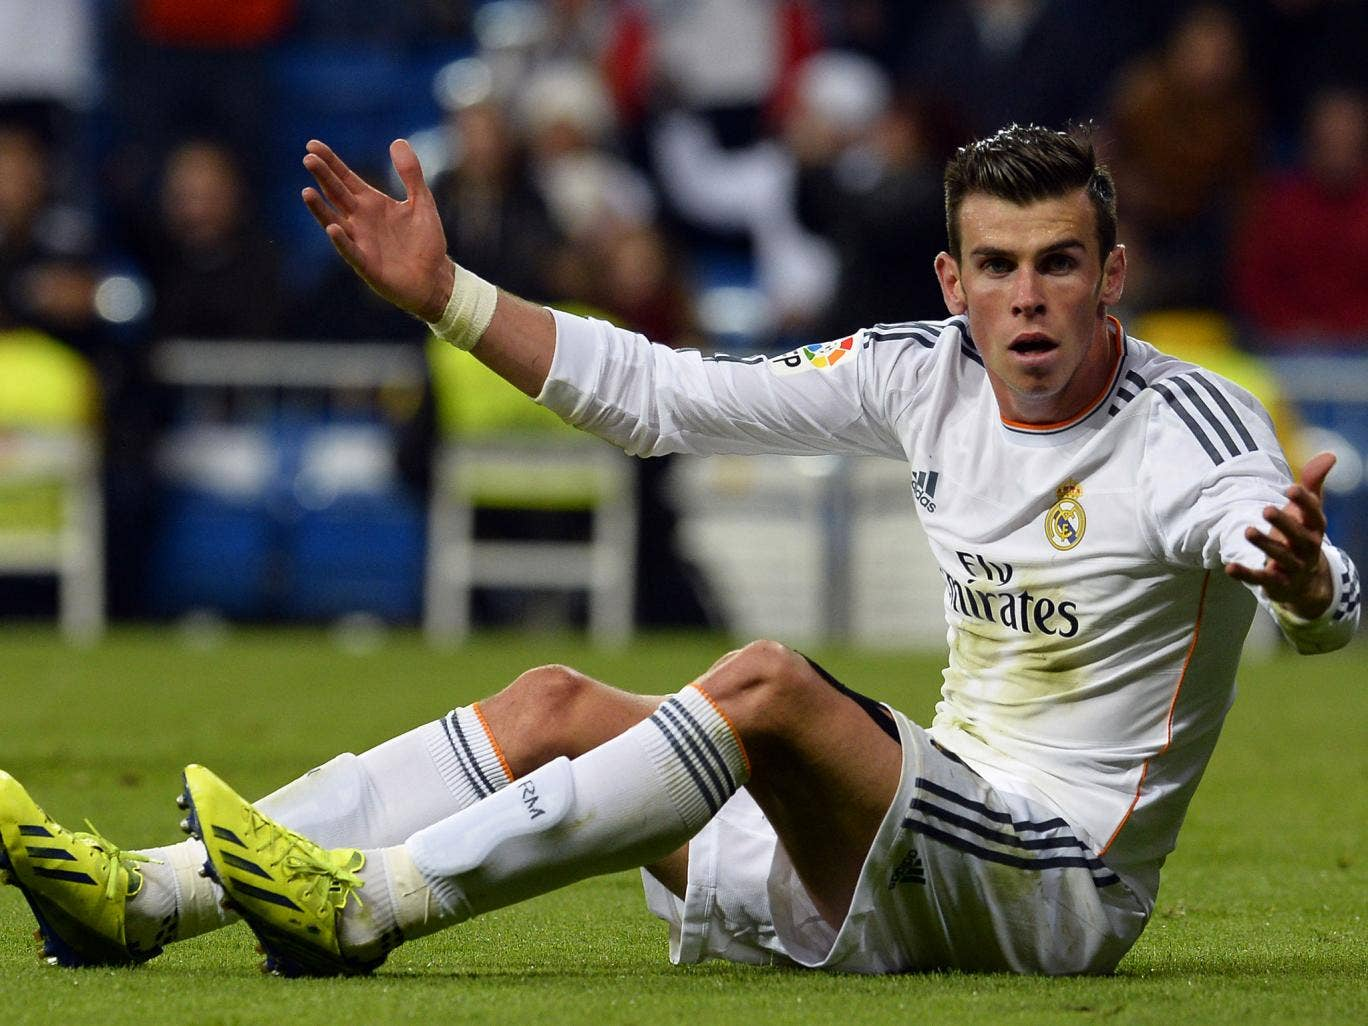 Gareth Bale reacts during the match against Sevilla at the Bernabeu on Wednesday